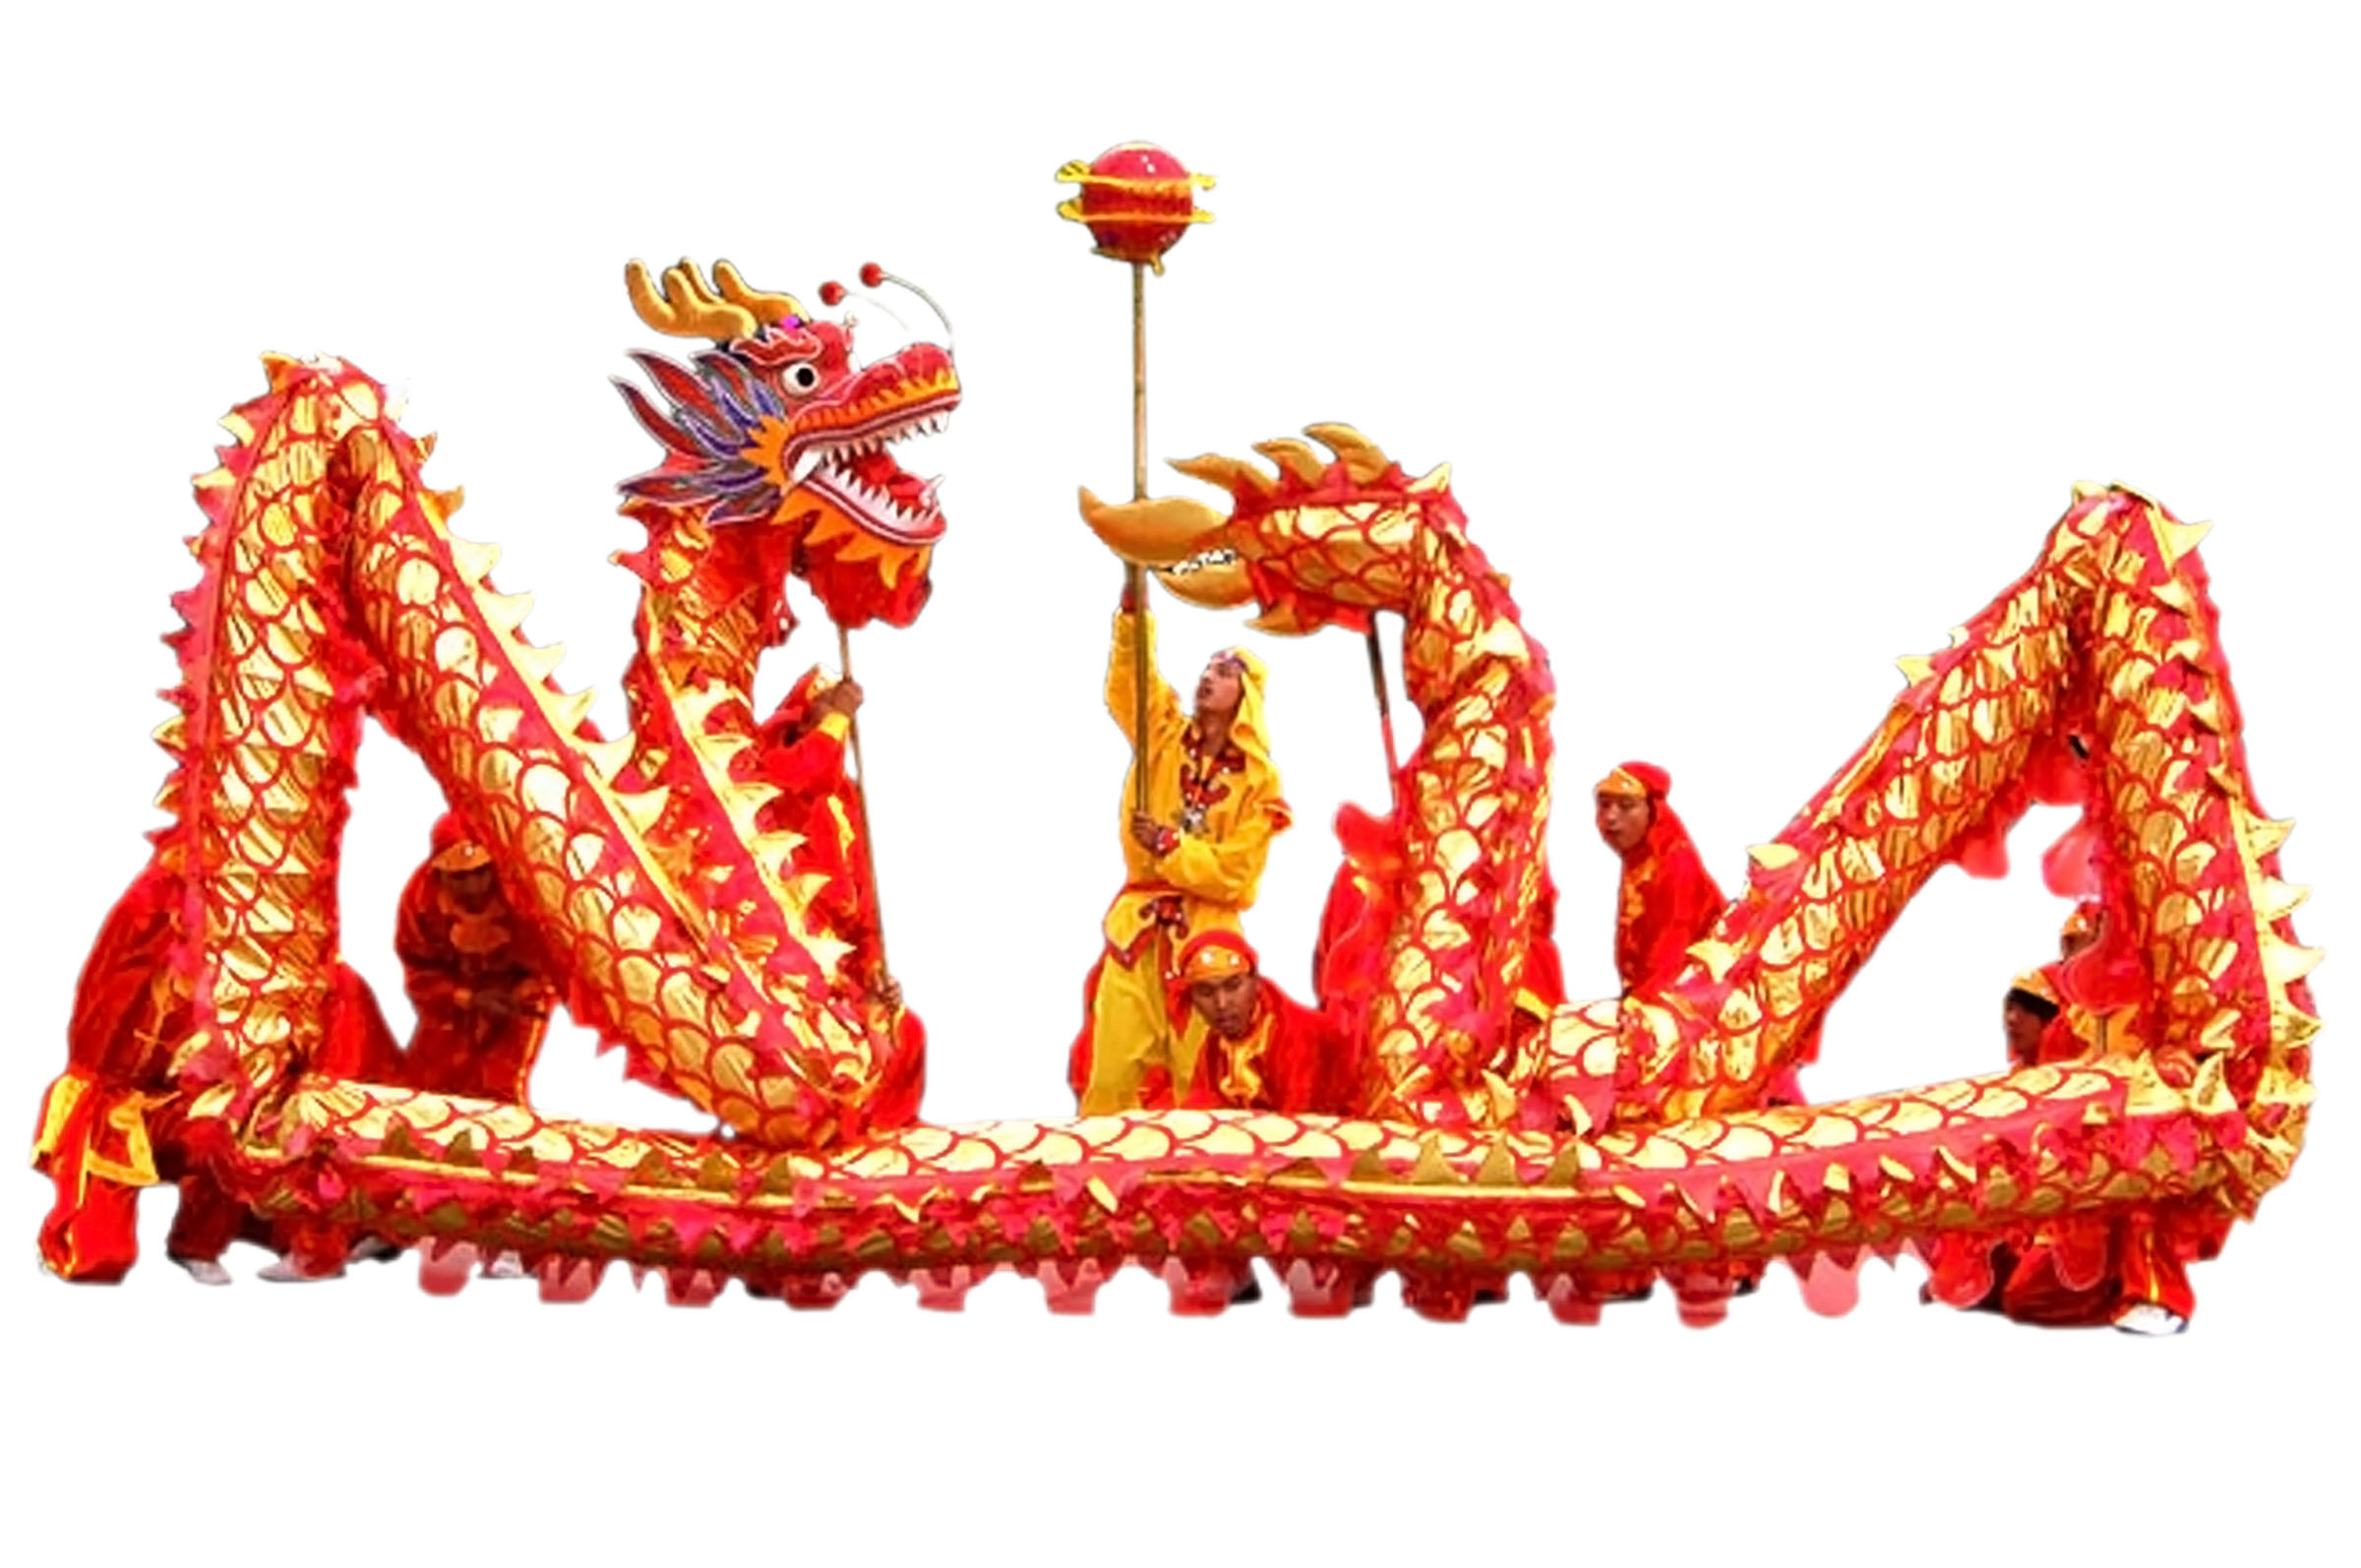 Exceptionnel Danse du Lion, danse du dragon & parade - DragonSports.eu YX23